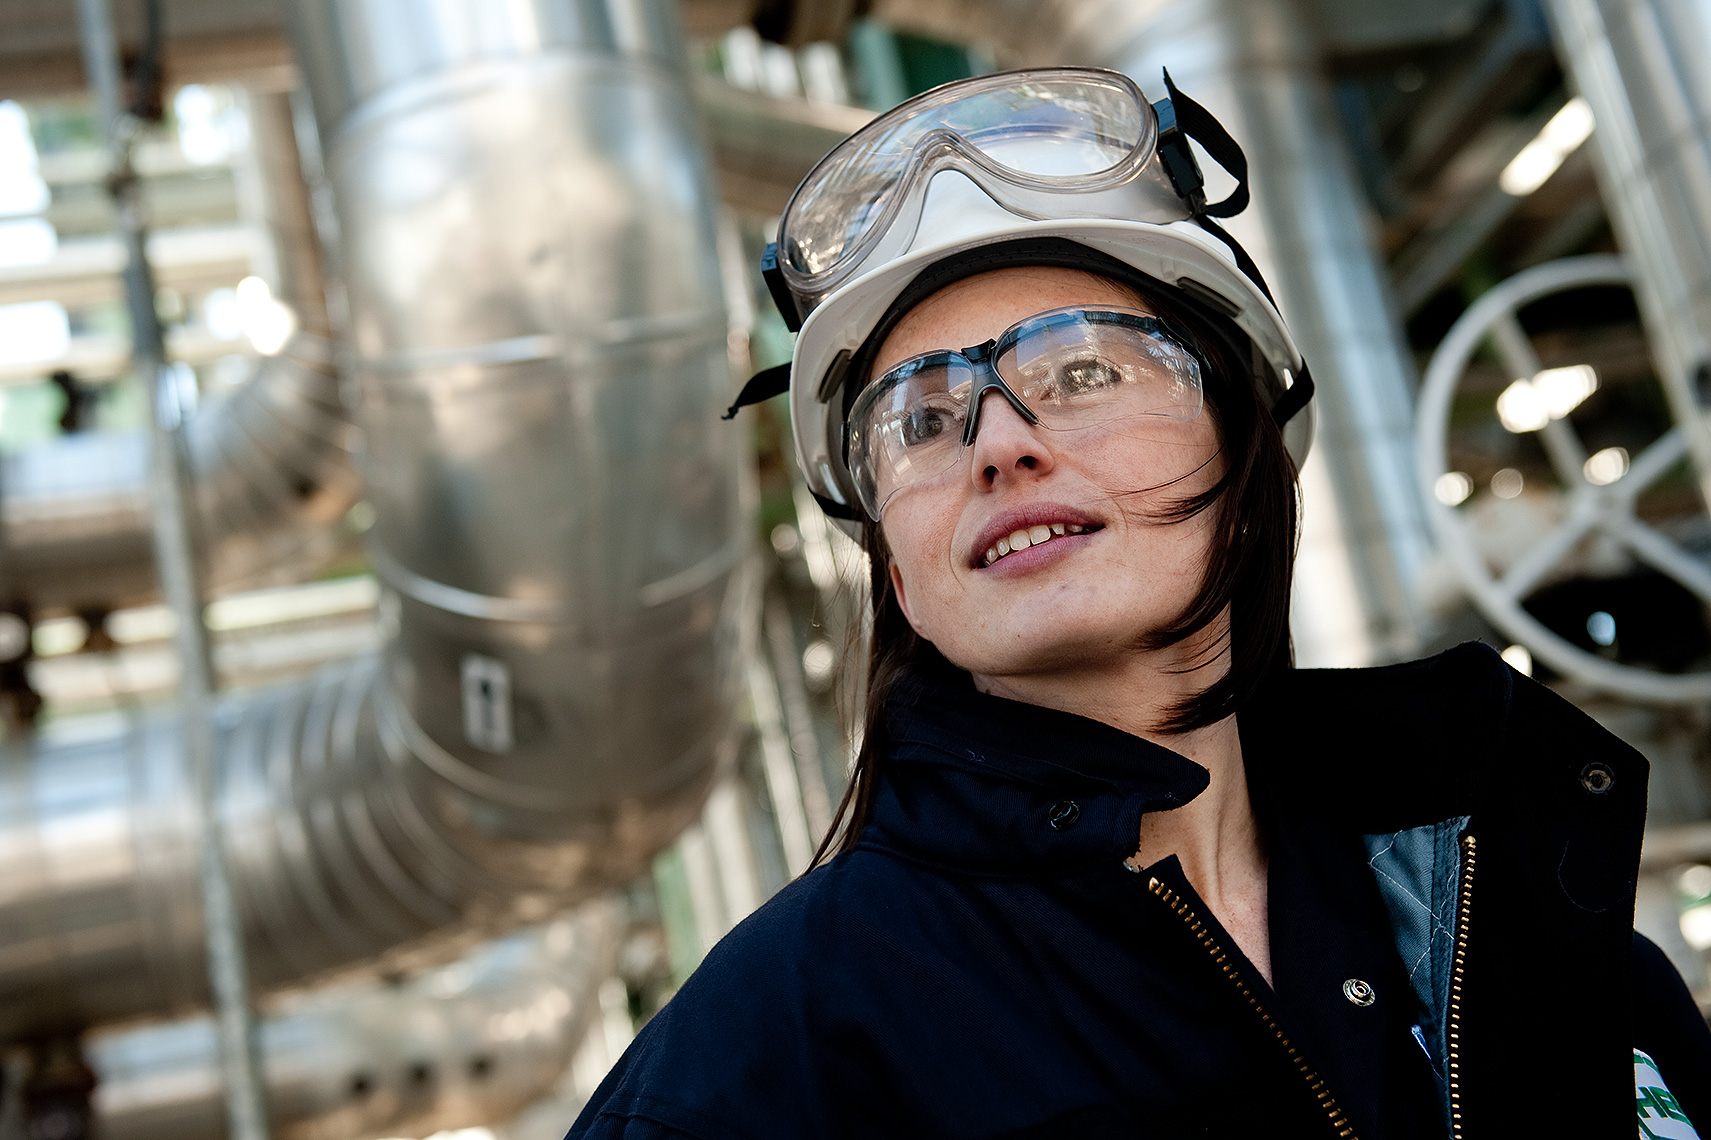 Oil Refinery Engineer Portrait